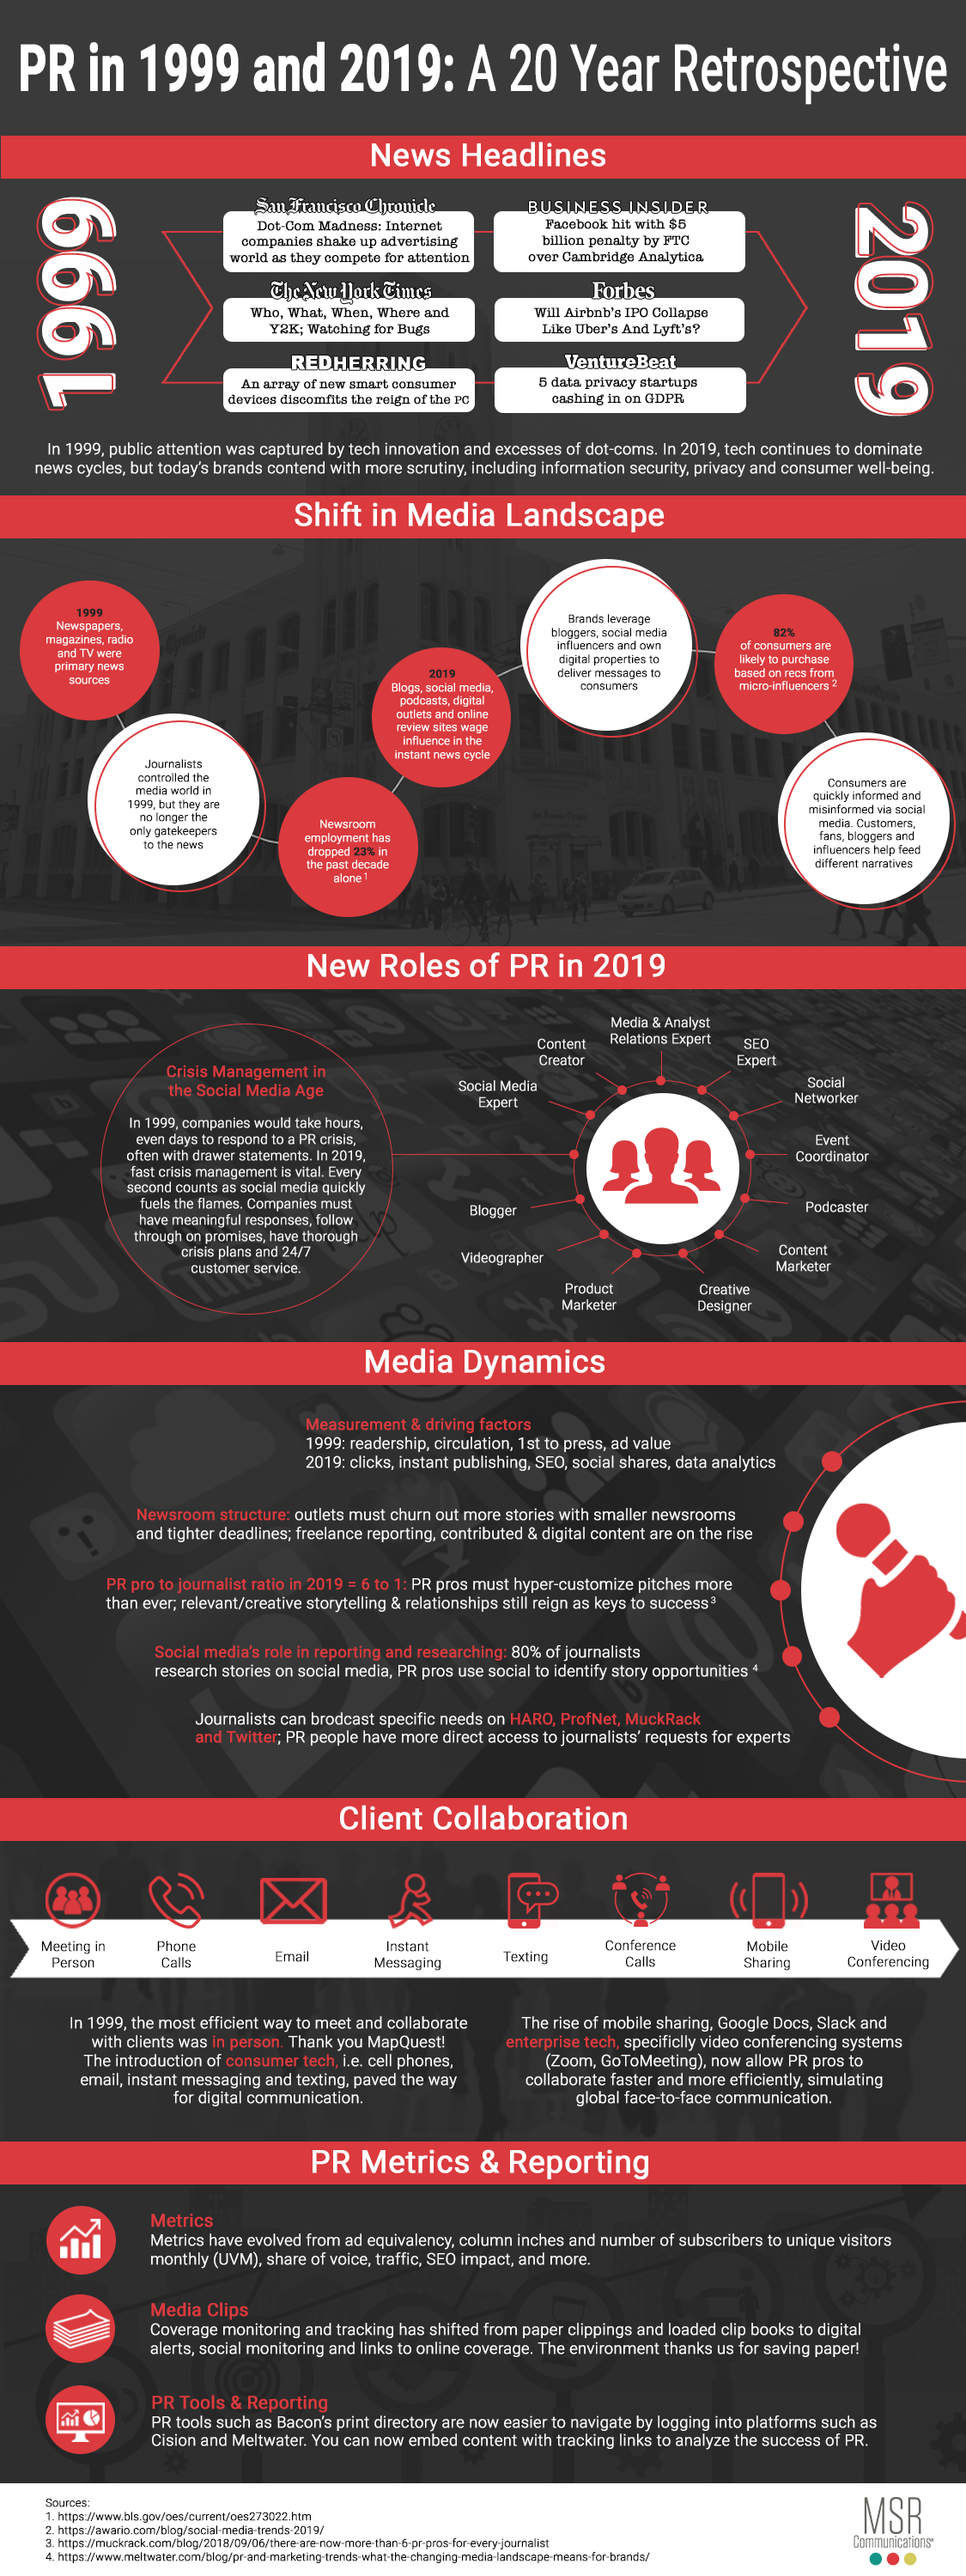 Infographic looks at the evolution of PR over the past 20 years